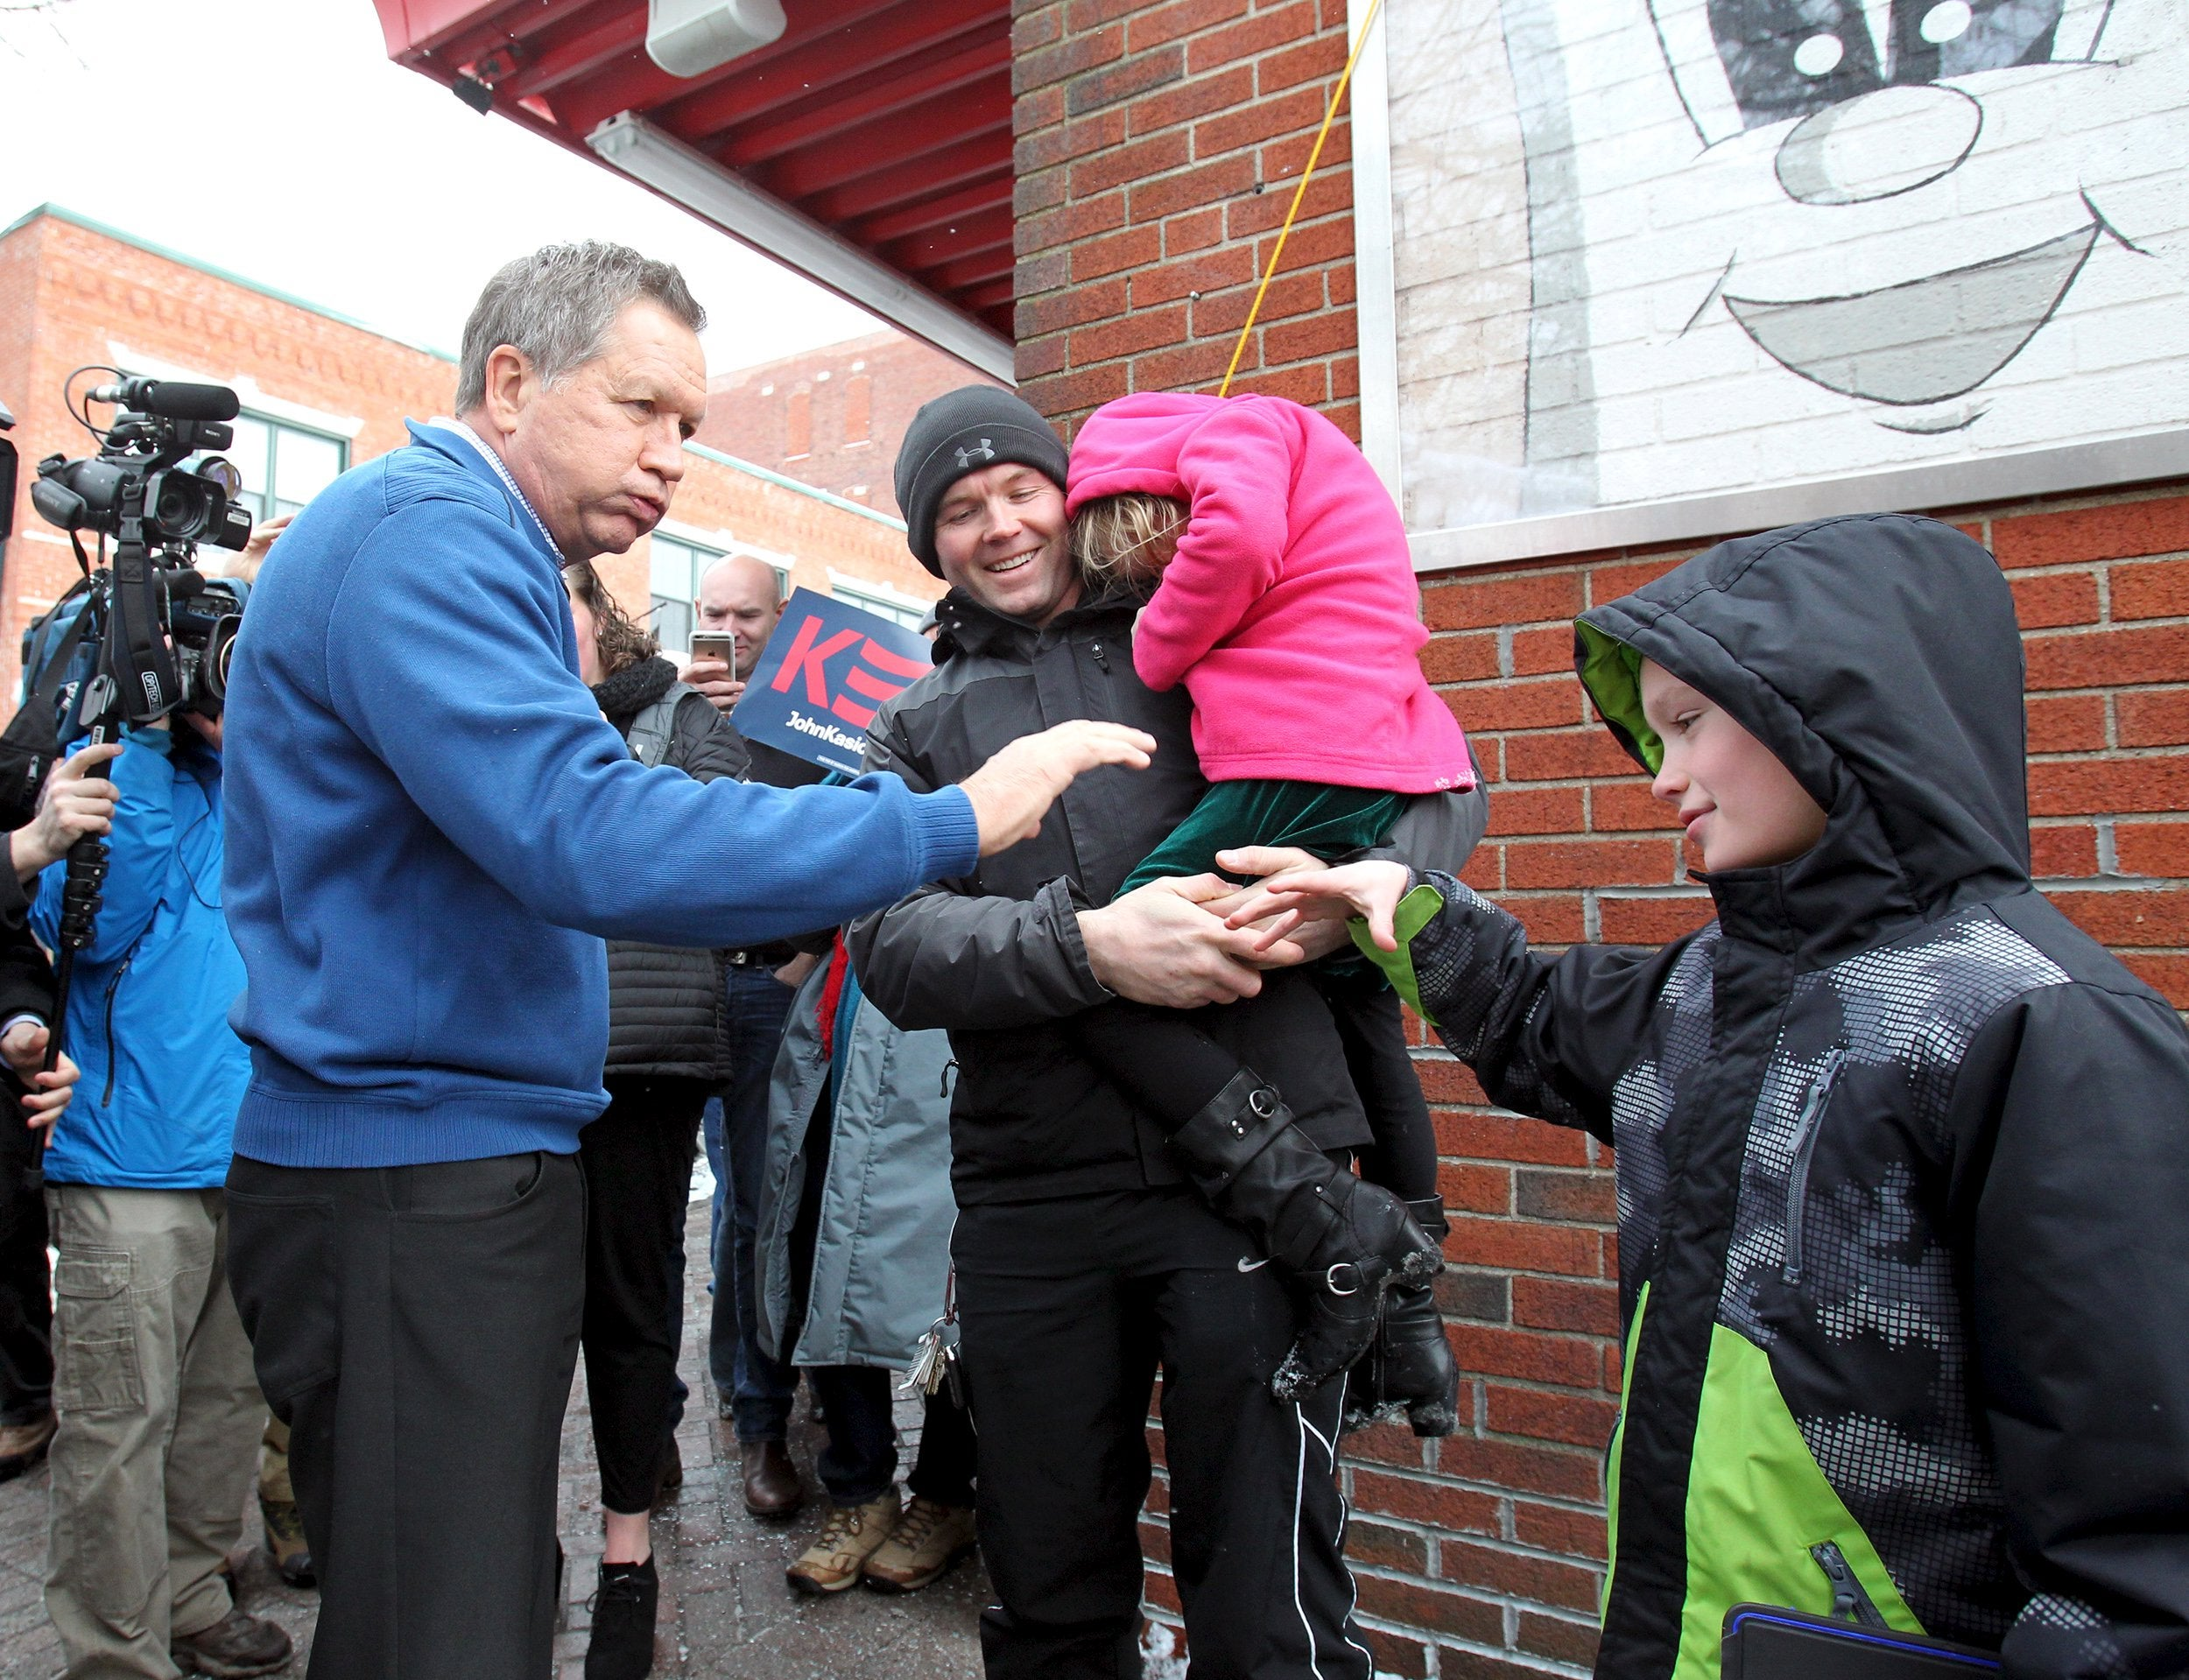 Kasich bumps fists with Cameron Patronick, 8, of Nashua, New Hampshire.